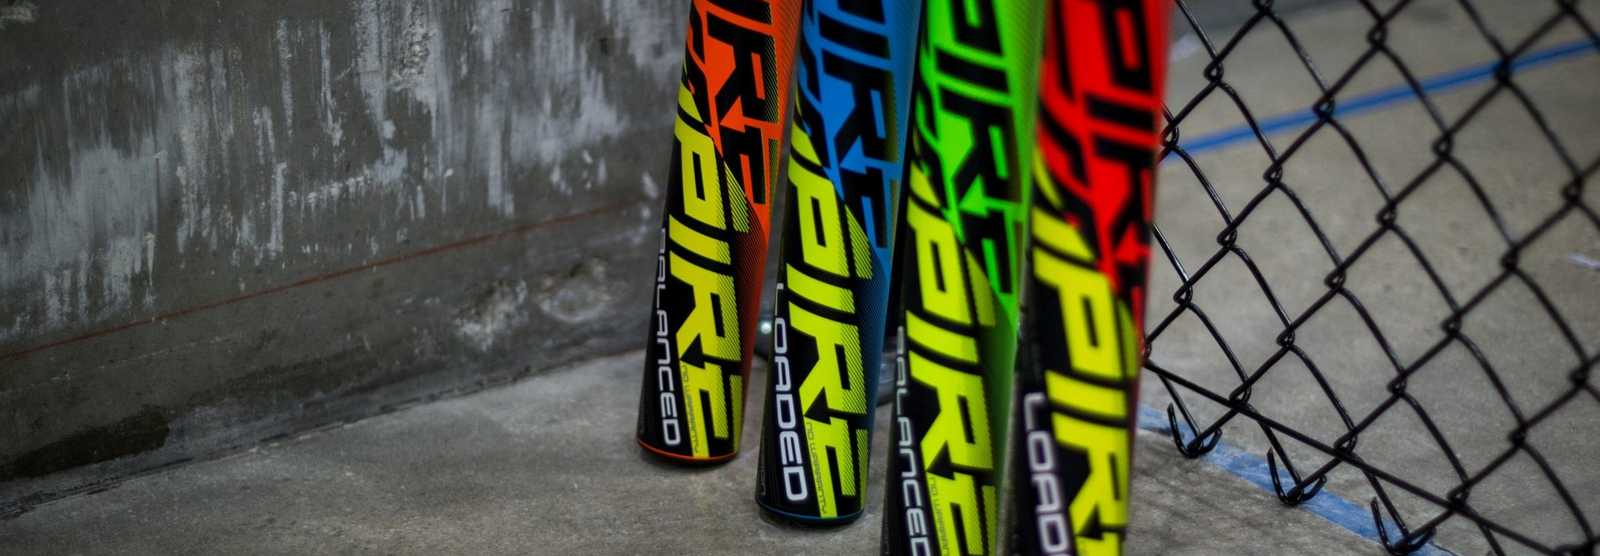 Senior Softball Bats | Shop for Quality Senior League